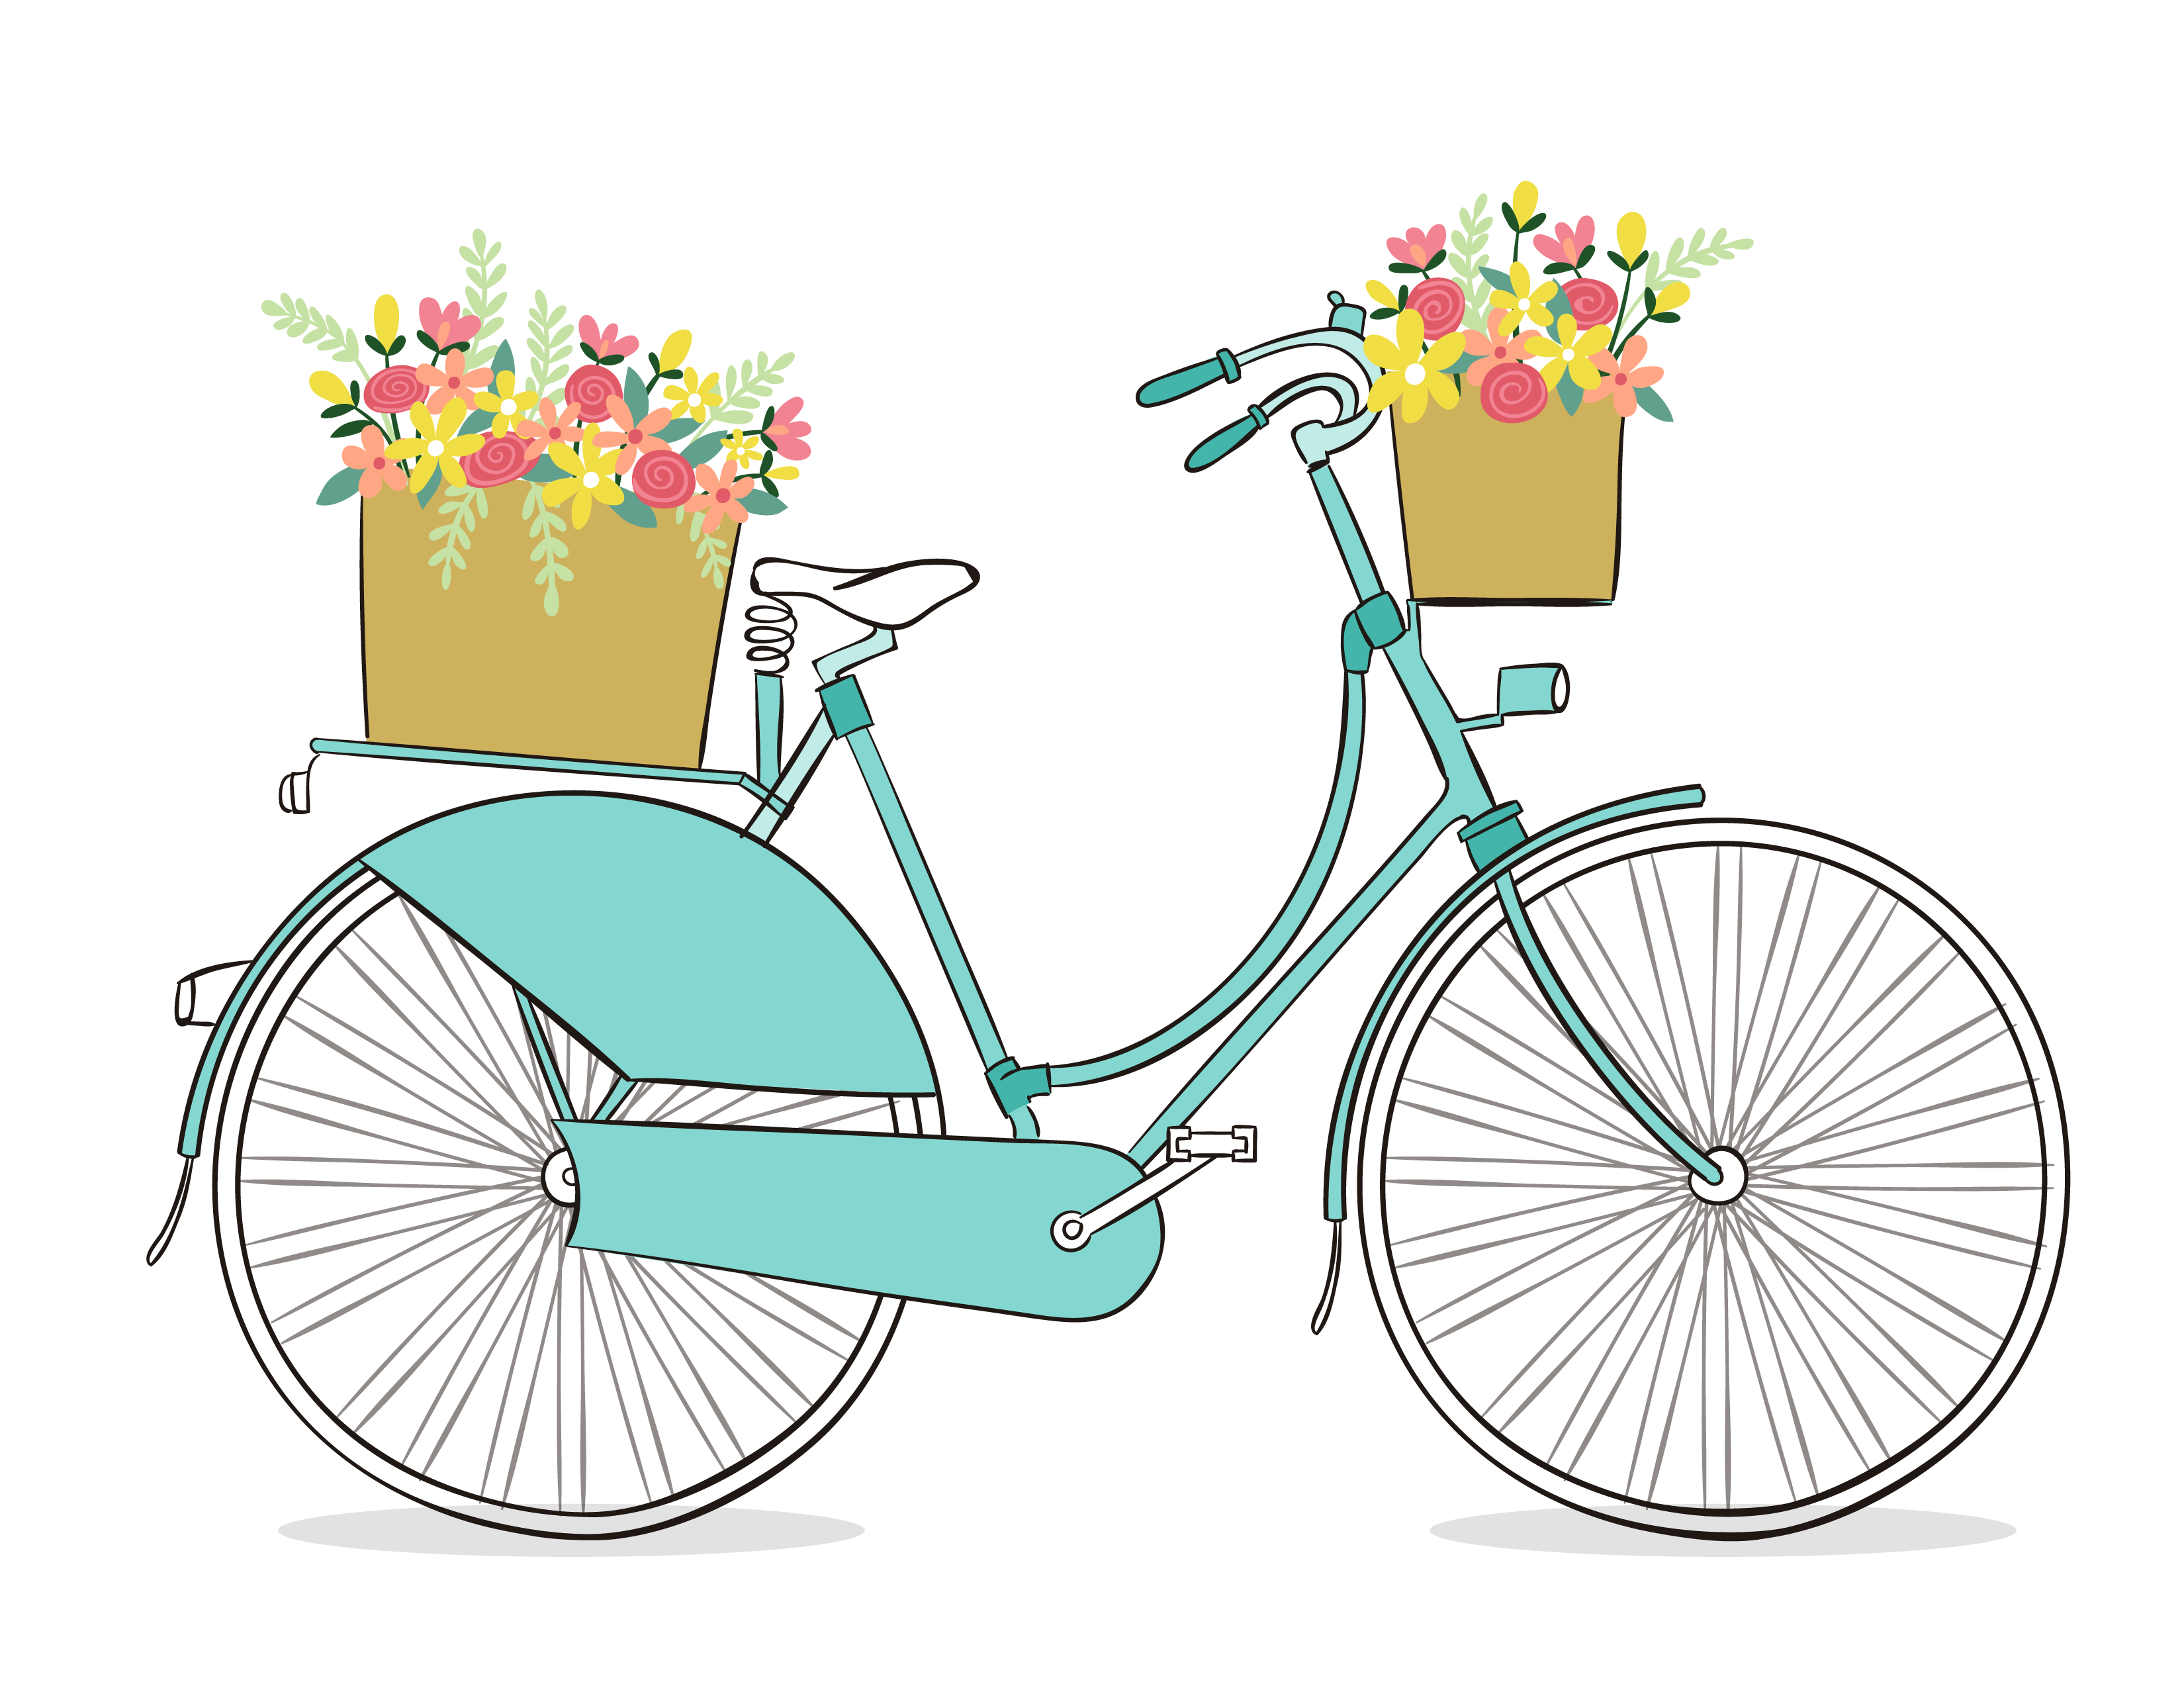 Free Romantic Bicycle Clip Art - Free Pretty Things For You